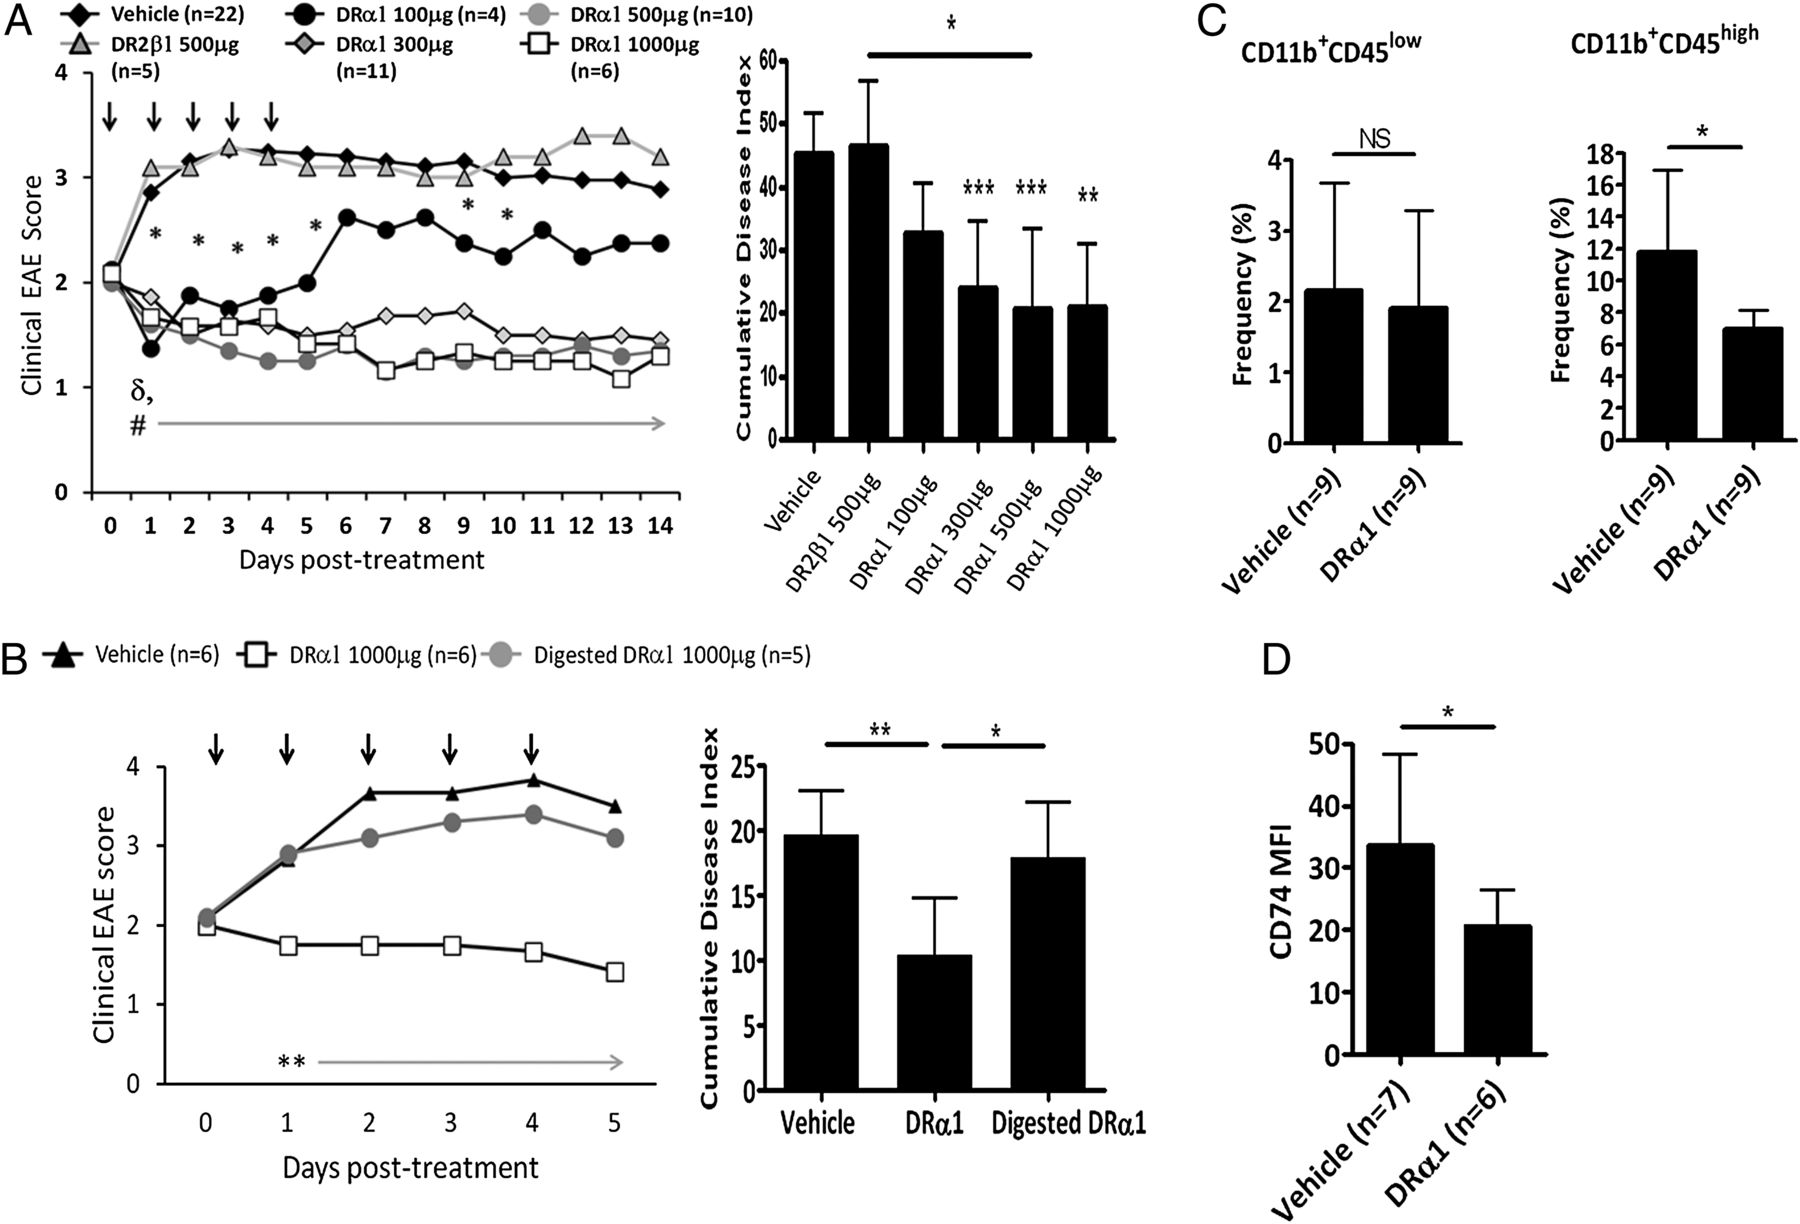 Recombinant TCR Ligand Induces Tolerance to Myelin